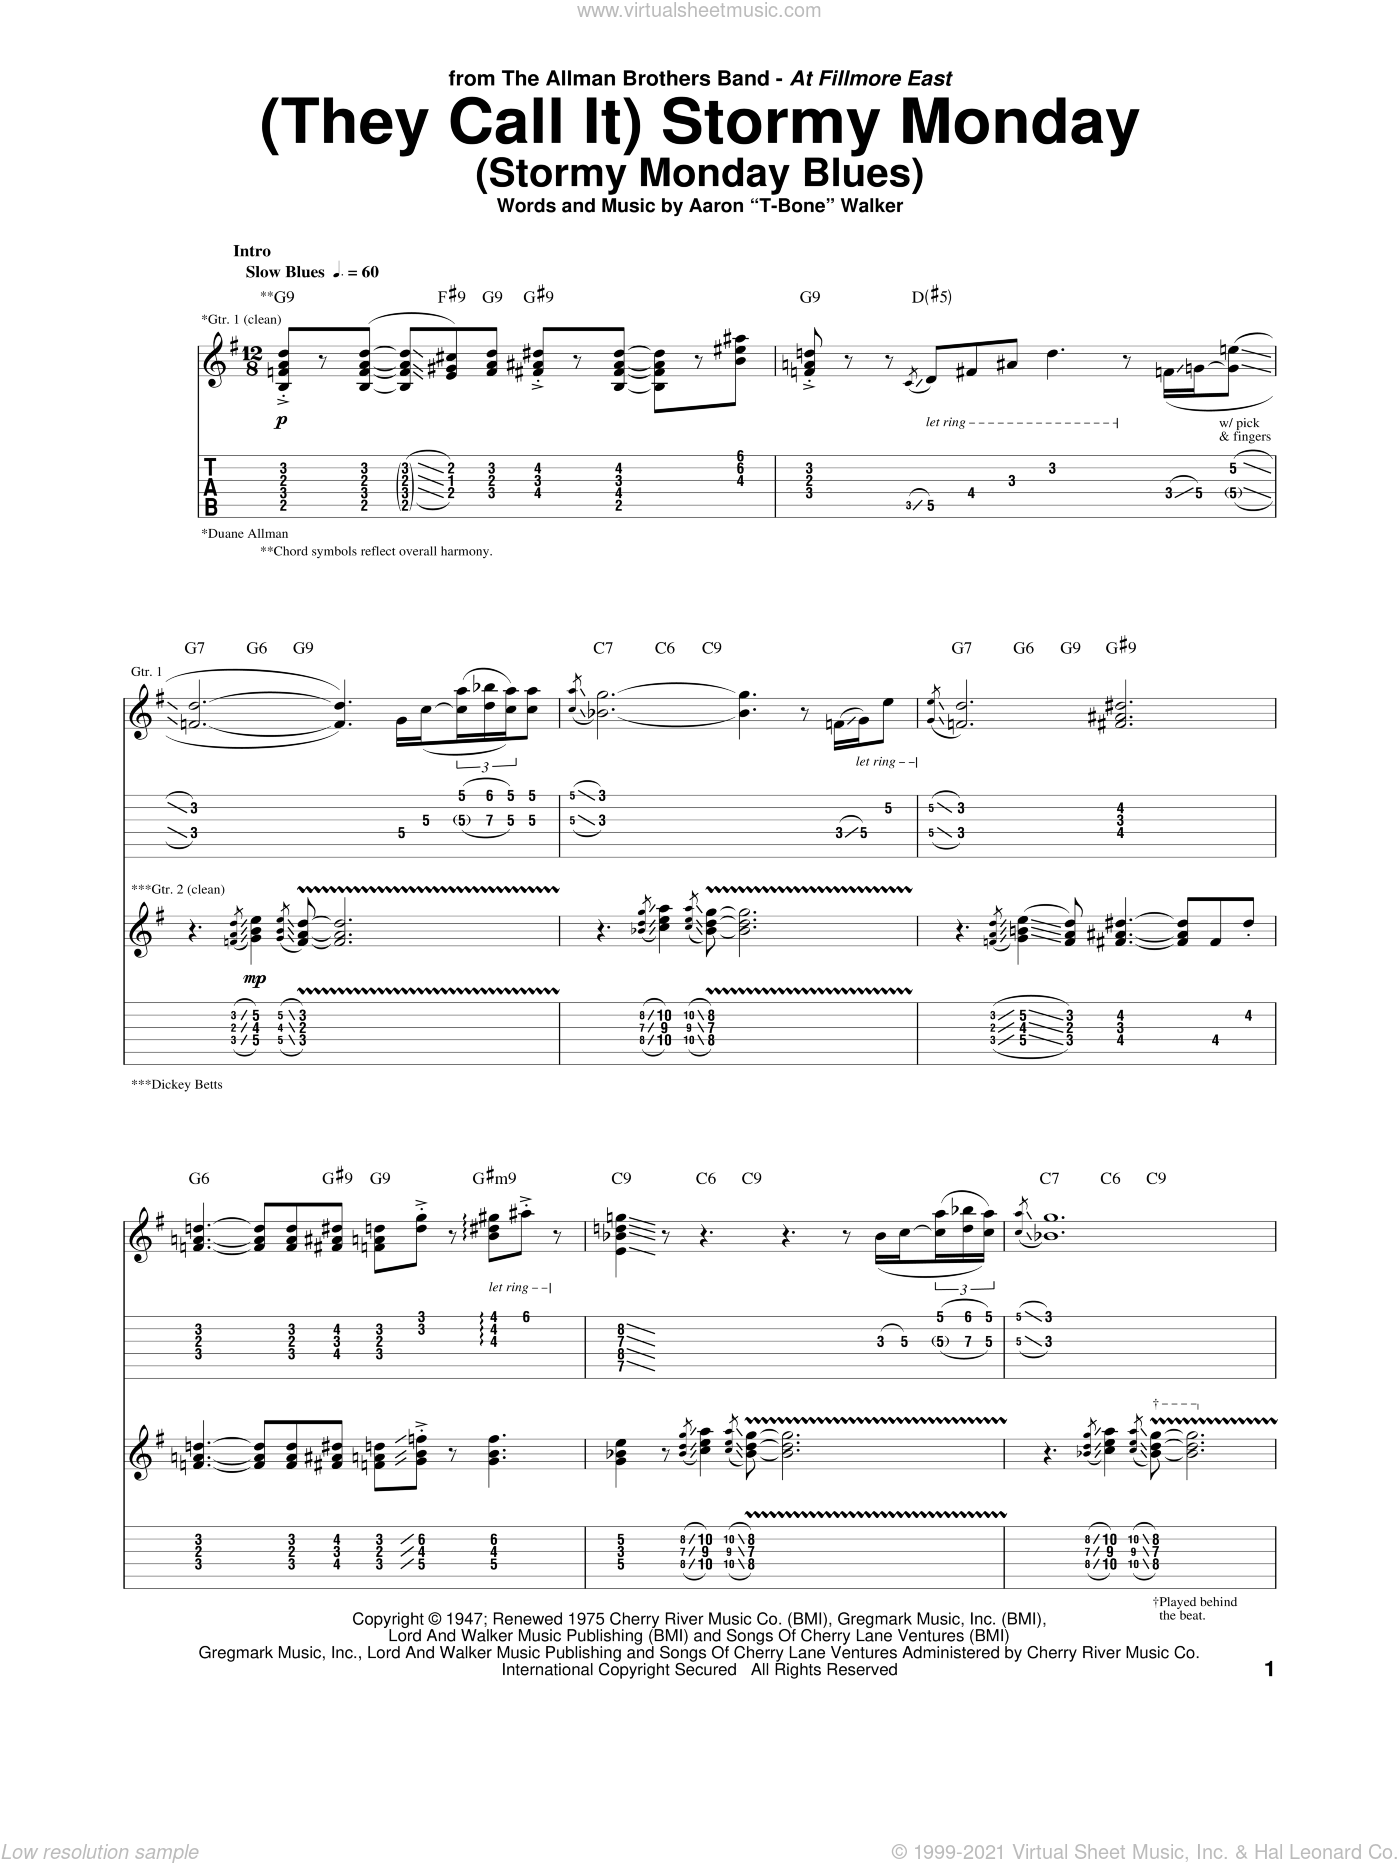 (They Call It) Stormy Monday (Stormy Monday Blues) sheet music for guitar (tablature) by Allman Brothers Band